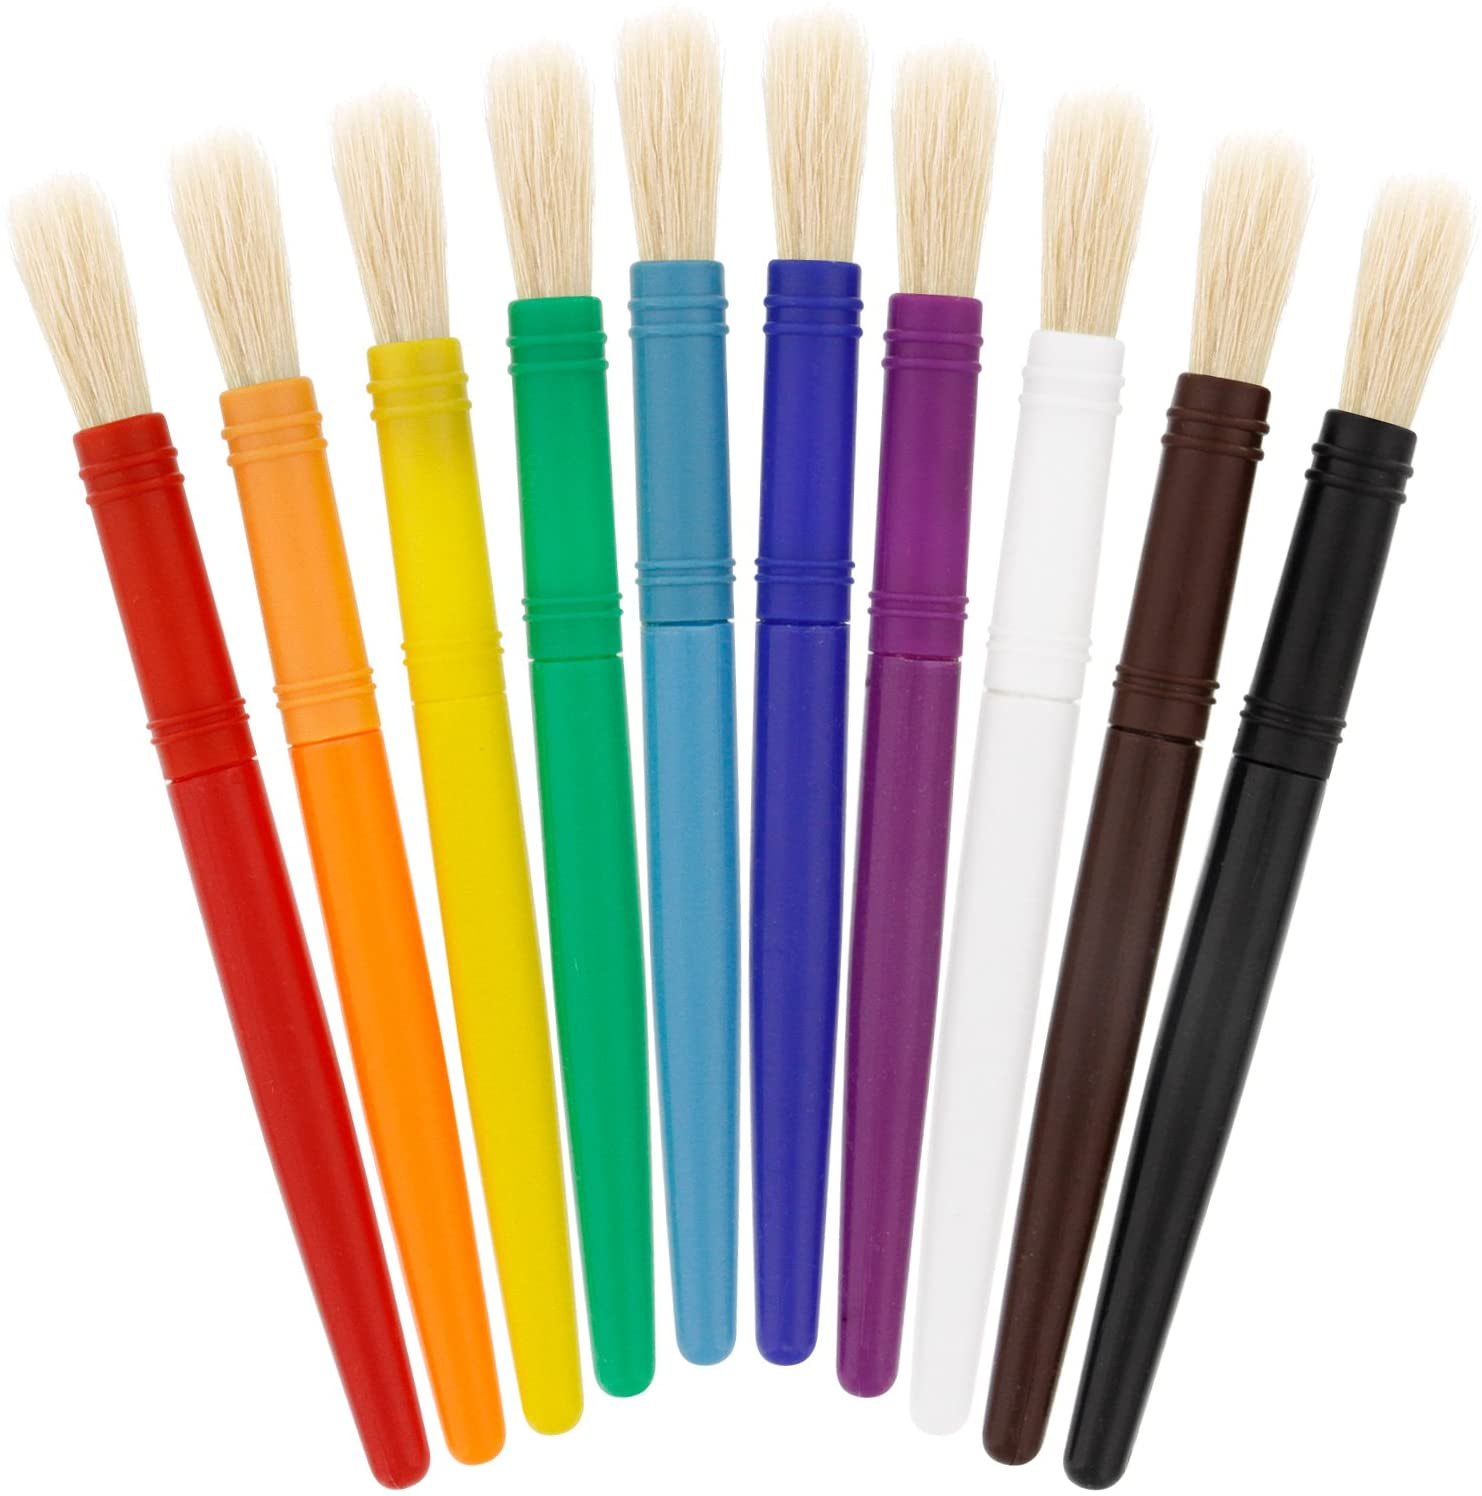 US Art Supply 10 Piece Large Round Chubby Hog Bristle Children's Tempera and Artist Paint Brushes